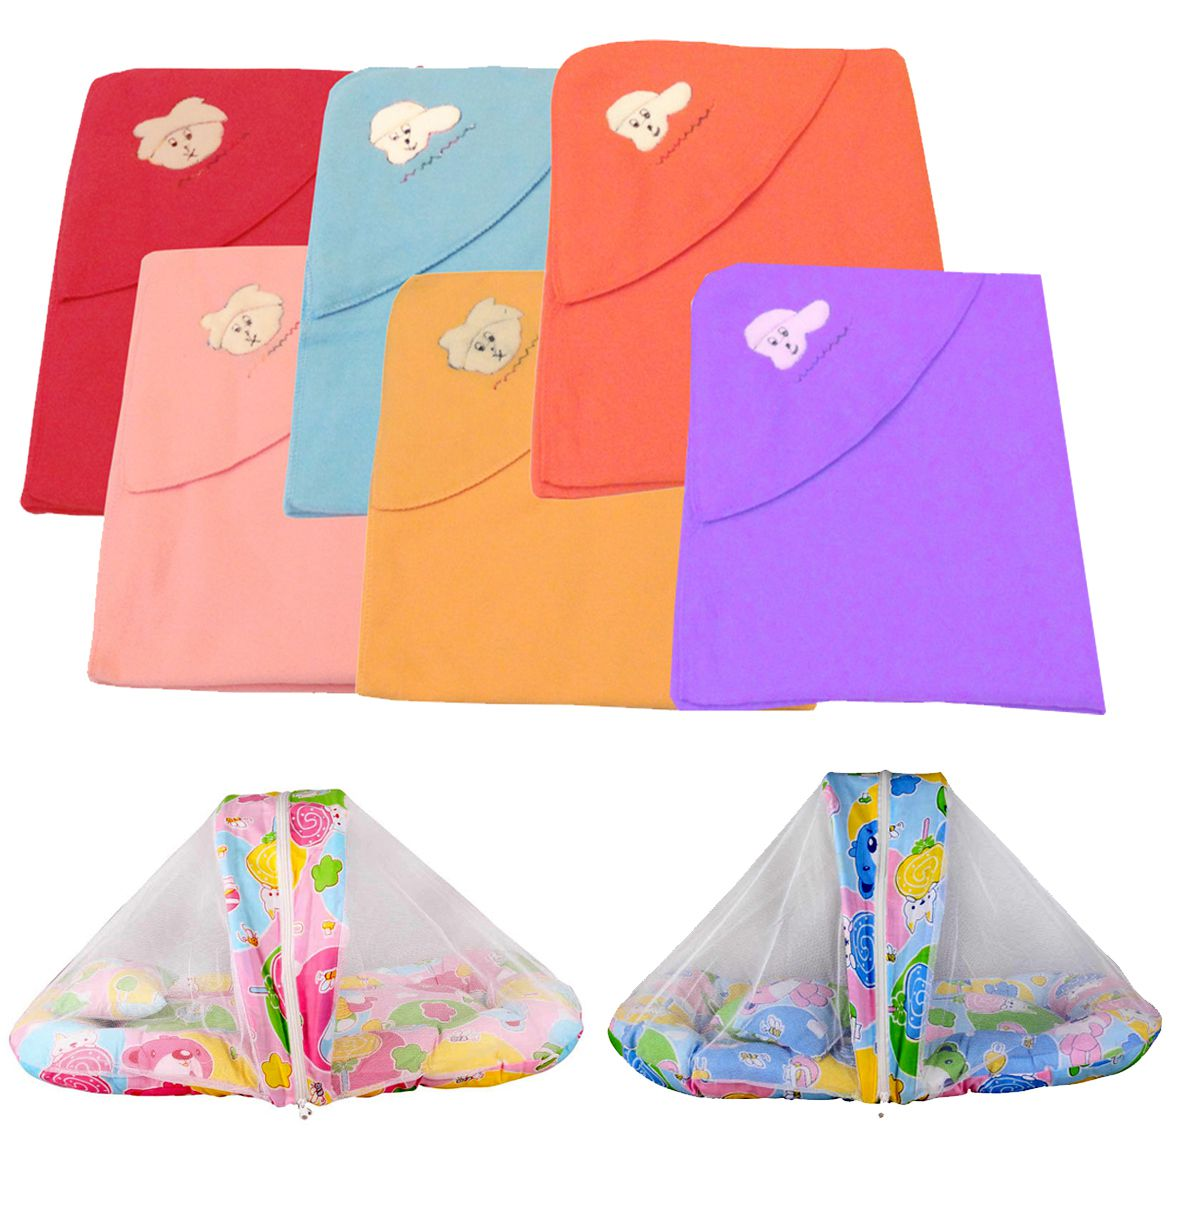 Big Bear Multicolour Six Baby Blankets with Two Baby Beds with Mosquito Nets Baby Blanket/Baby Swaddle/Baby Sleeping Bag